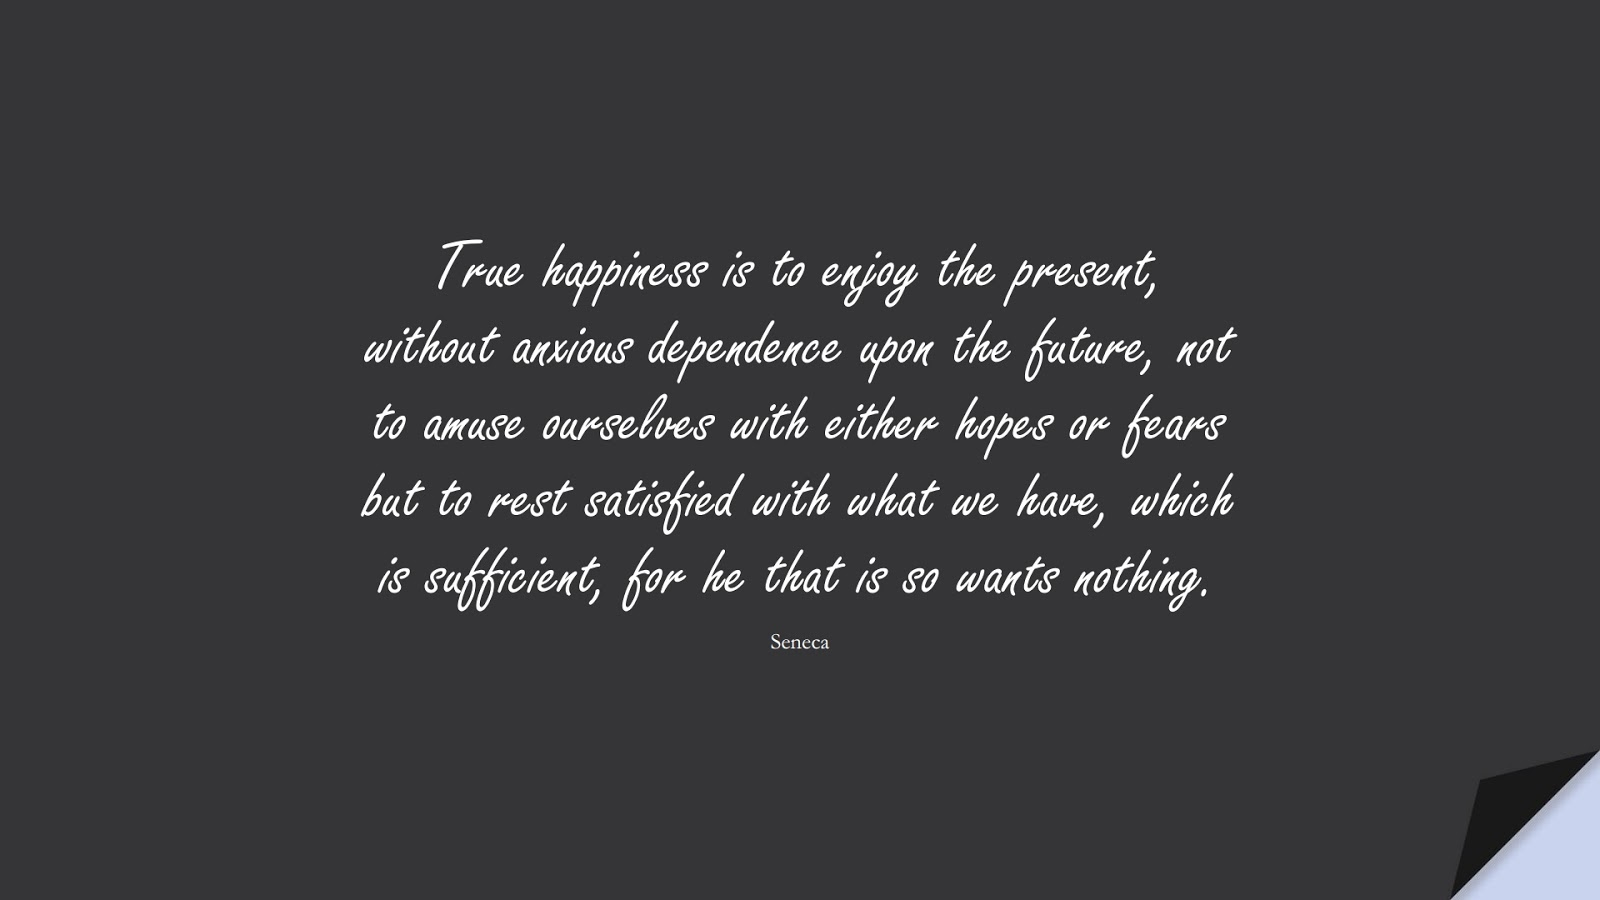 True happiness is to enjoy the present, without anxious dependence upon the future, not to amuse ourselves with either hopes or fears but to rest satisfied with what we have, which is sufficient, for he that is so wants nothing. (Seneca);  #StoicQuotes